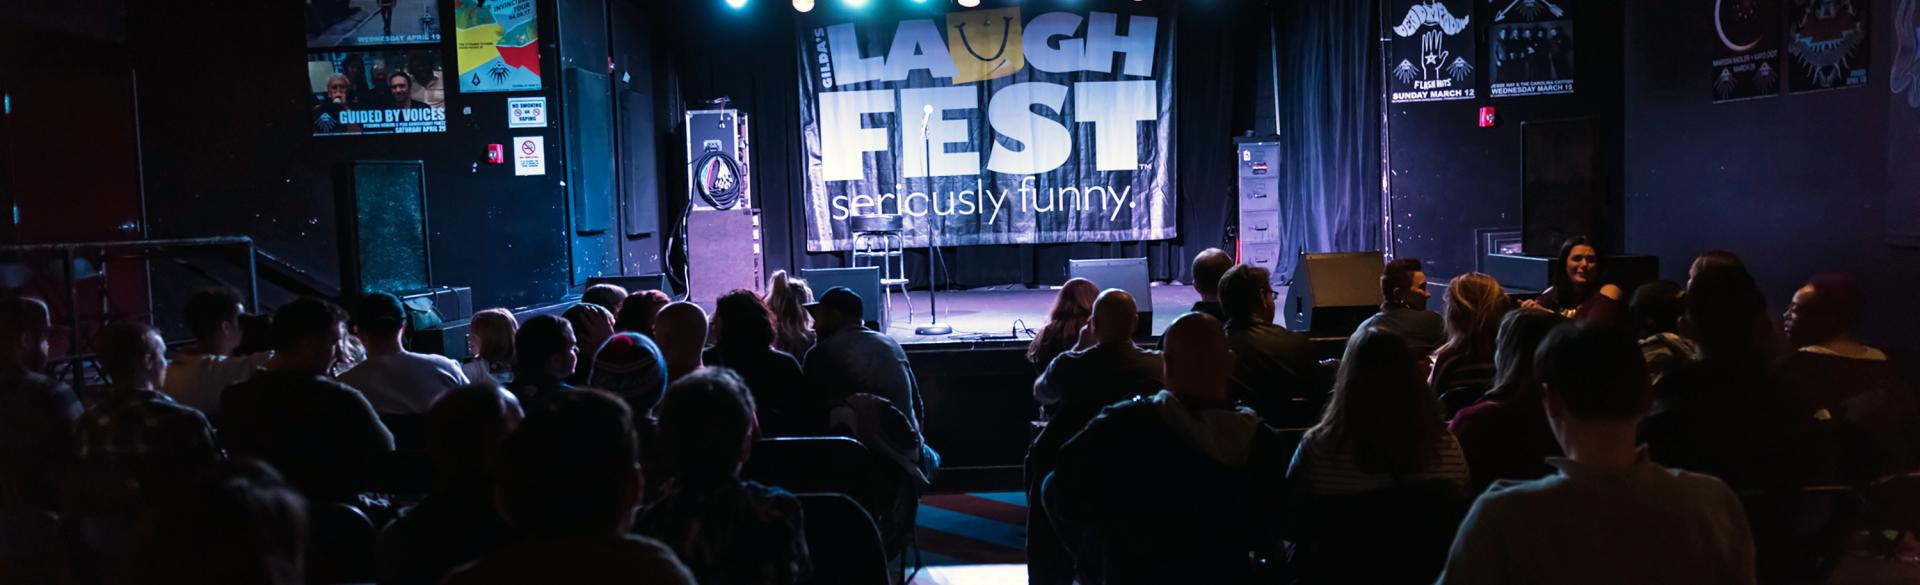 Audience at LaughFest